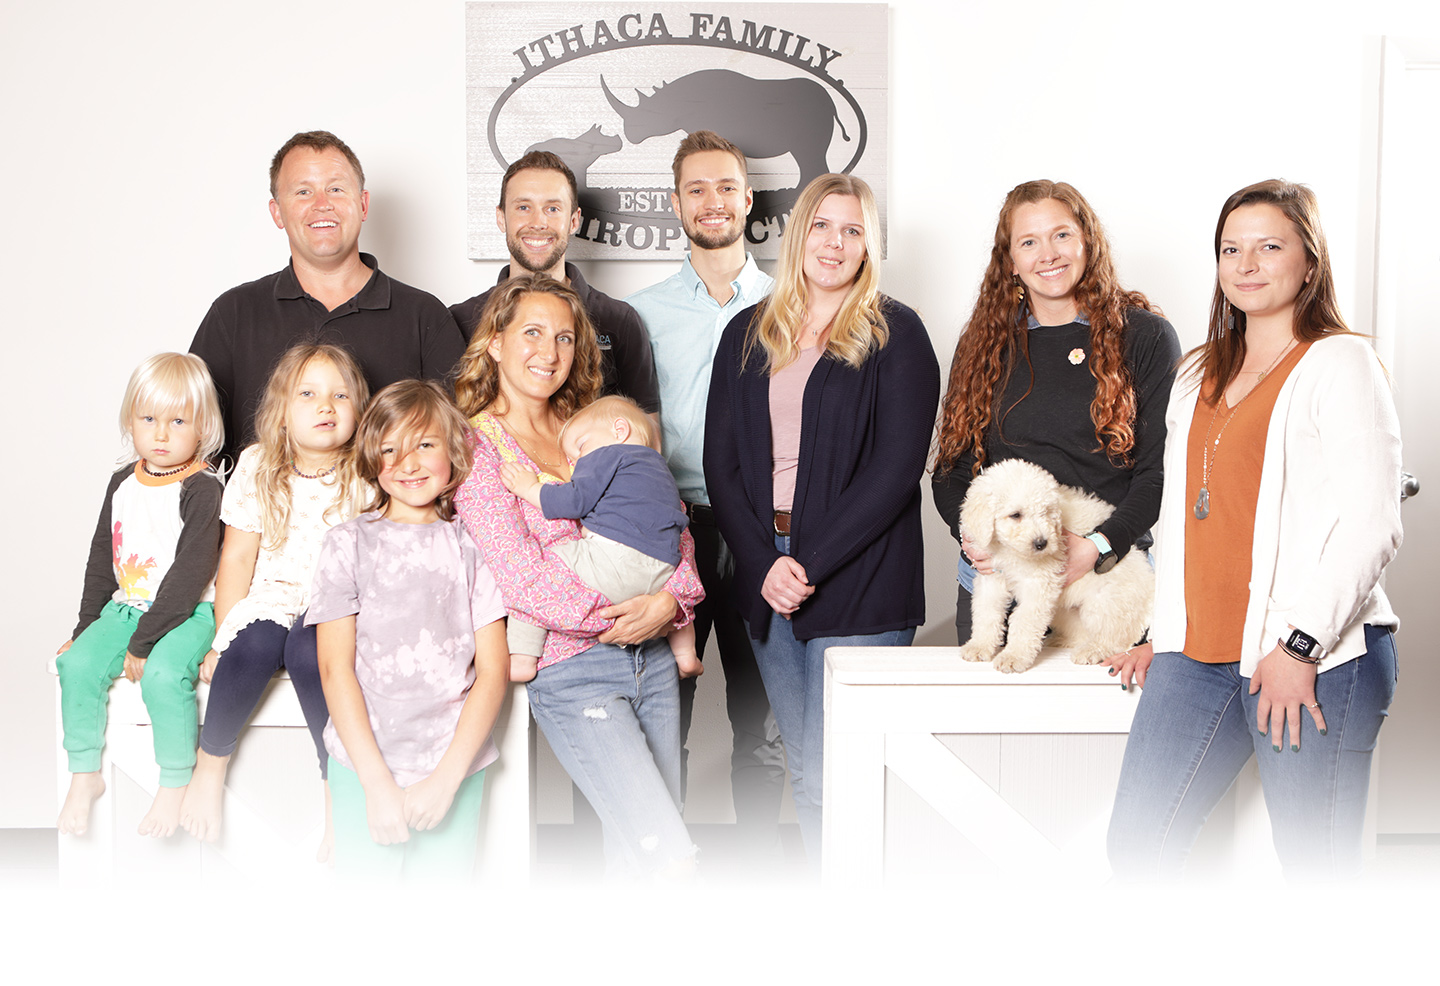 Ithaca Family Chiropractic team and family